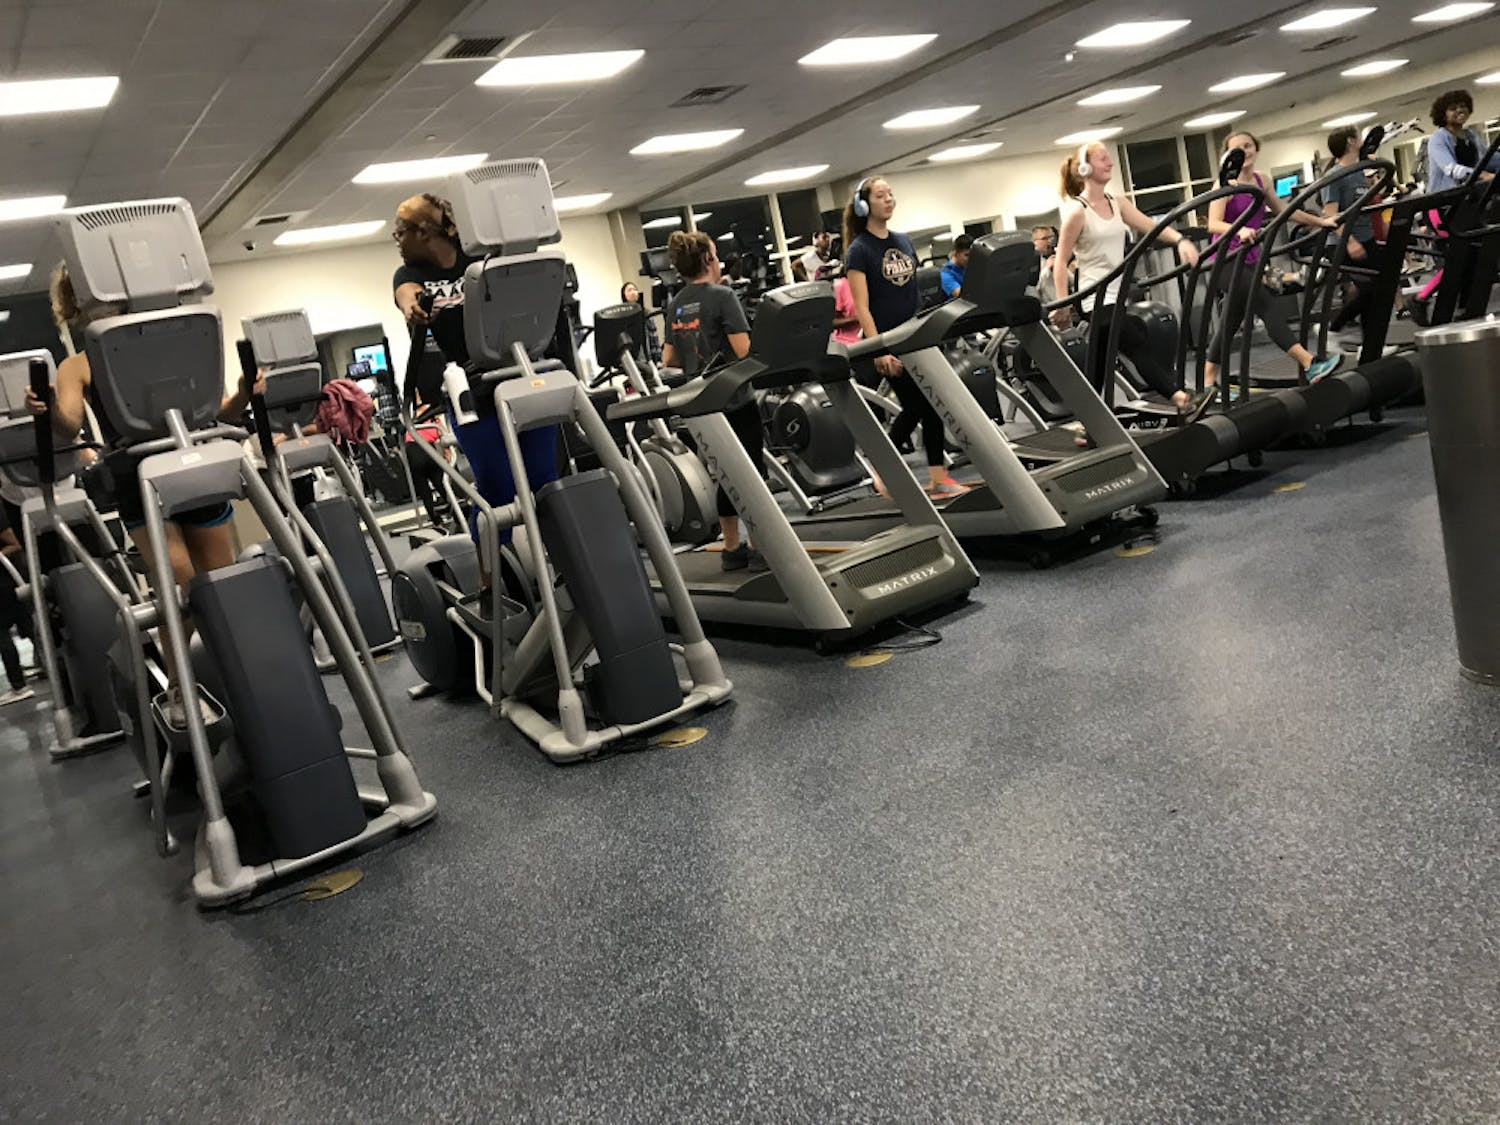 During the first week of spring semester, Student Recreation center is overflowing with students determined to keep their New Year's resolutions.